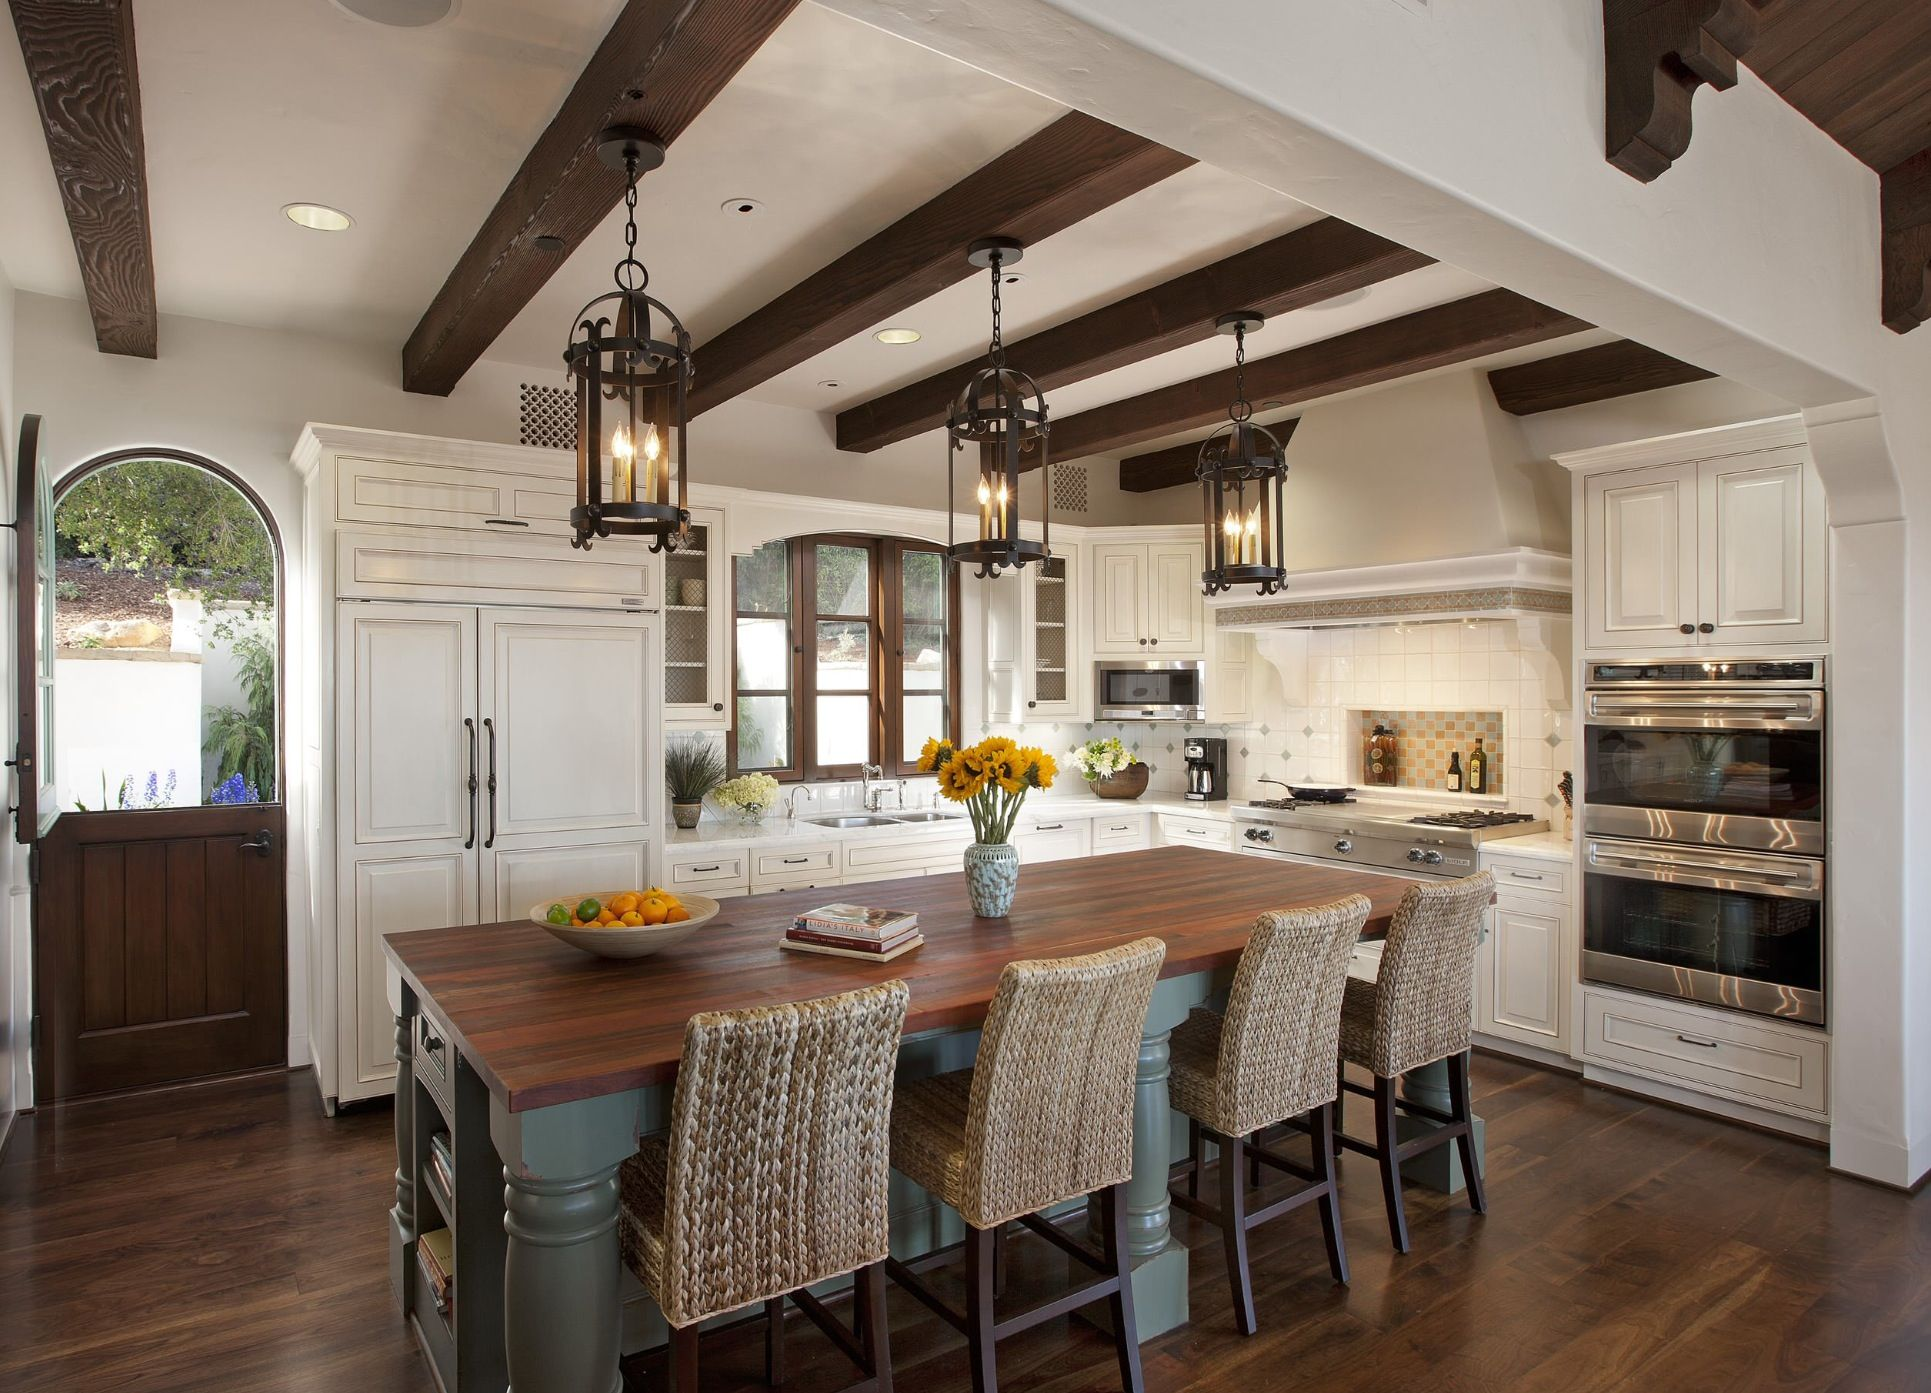 Pin by Darlene Clark on remember these home ideas